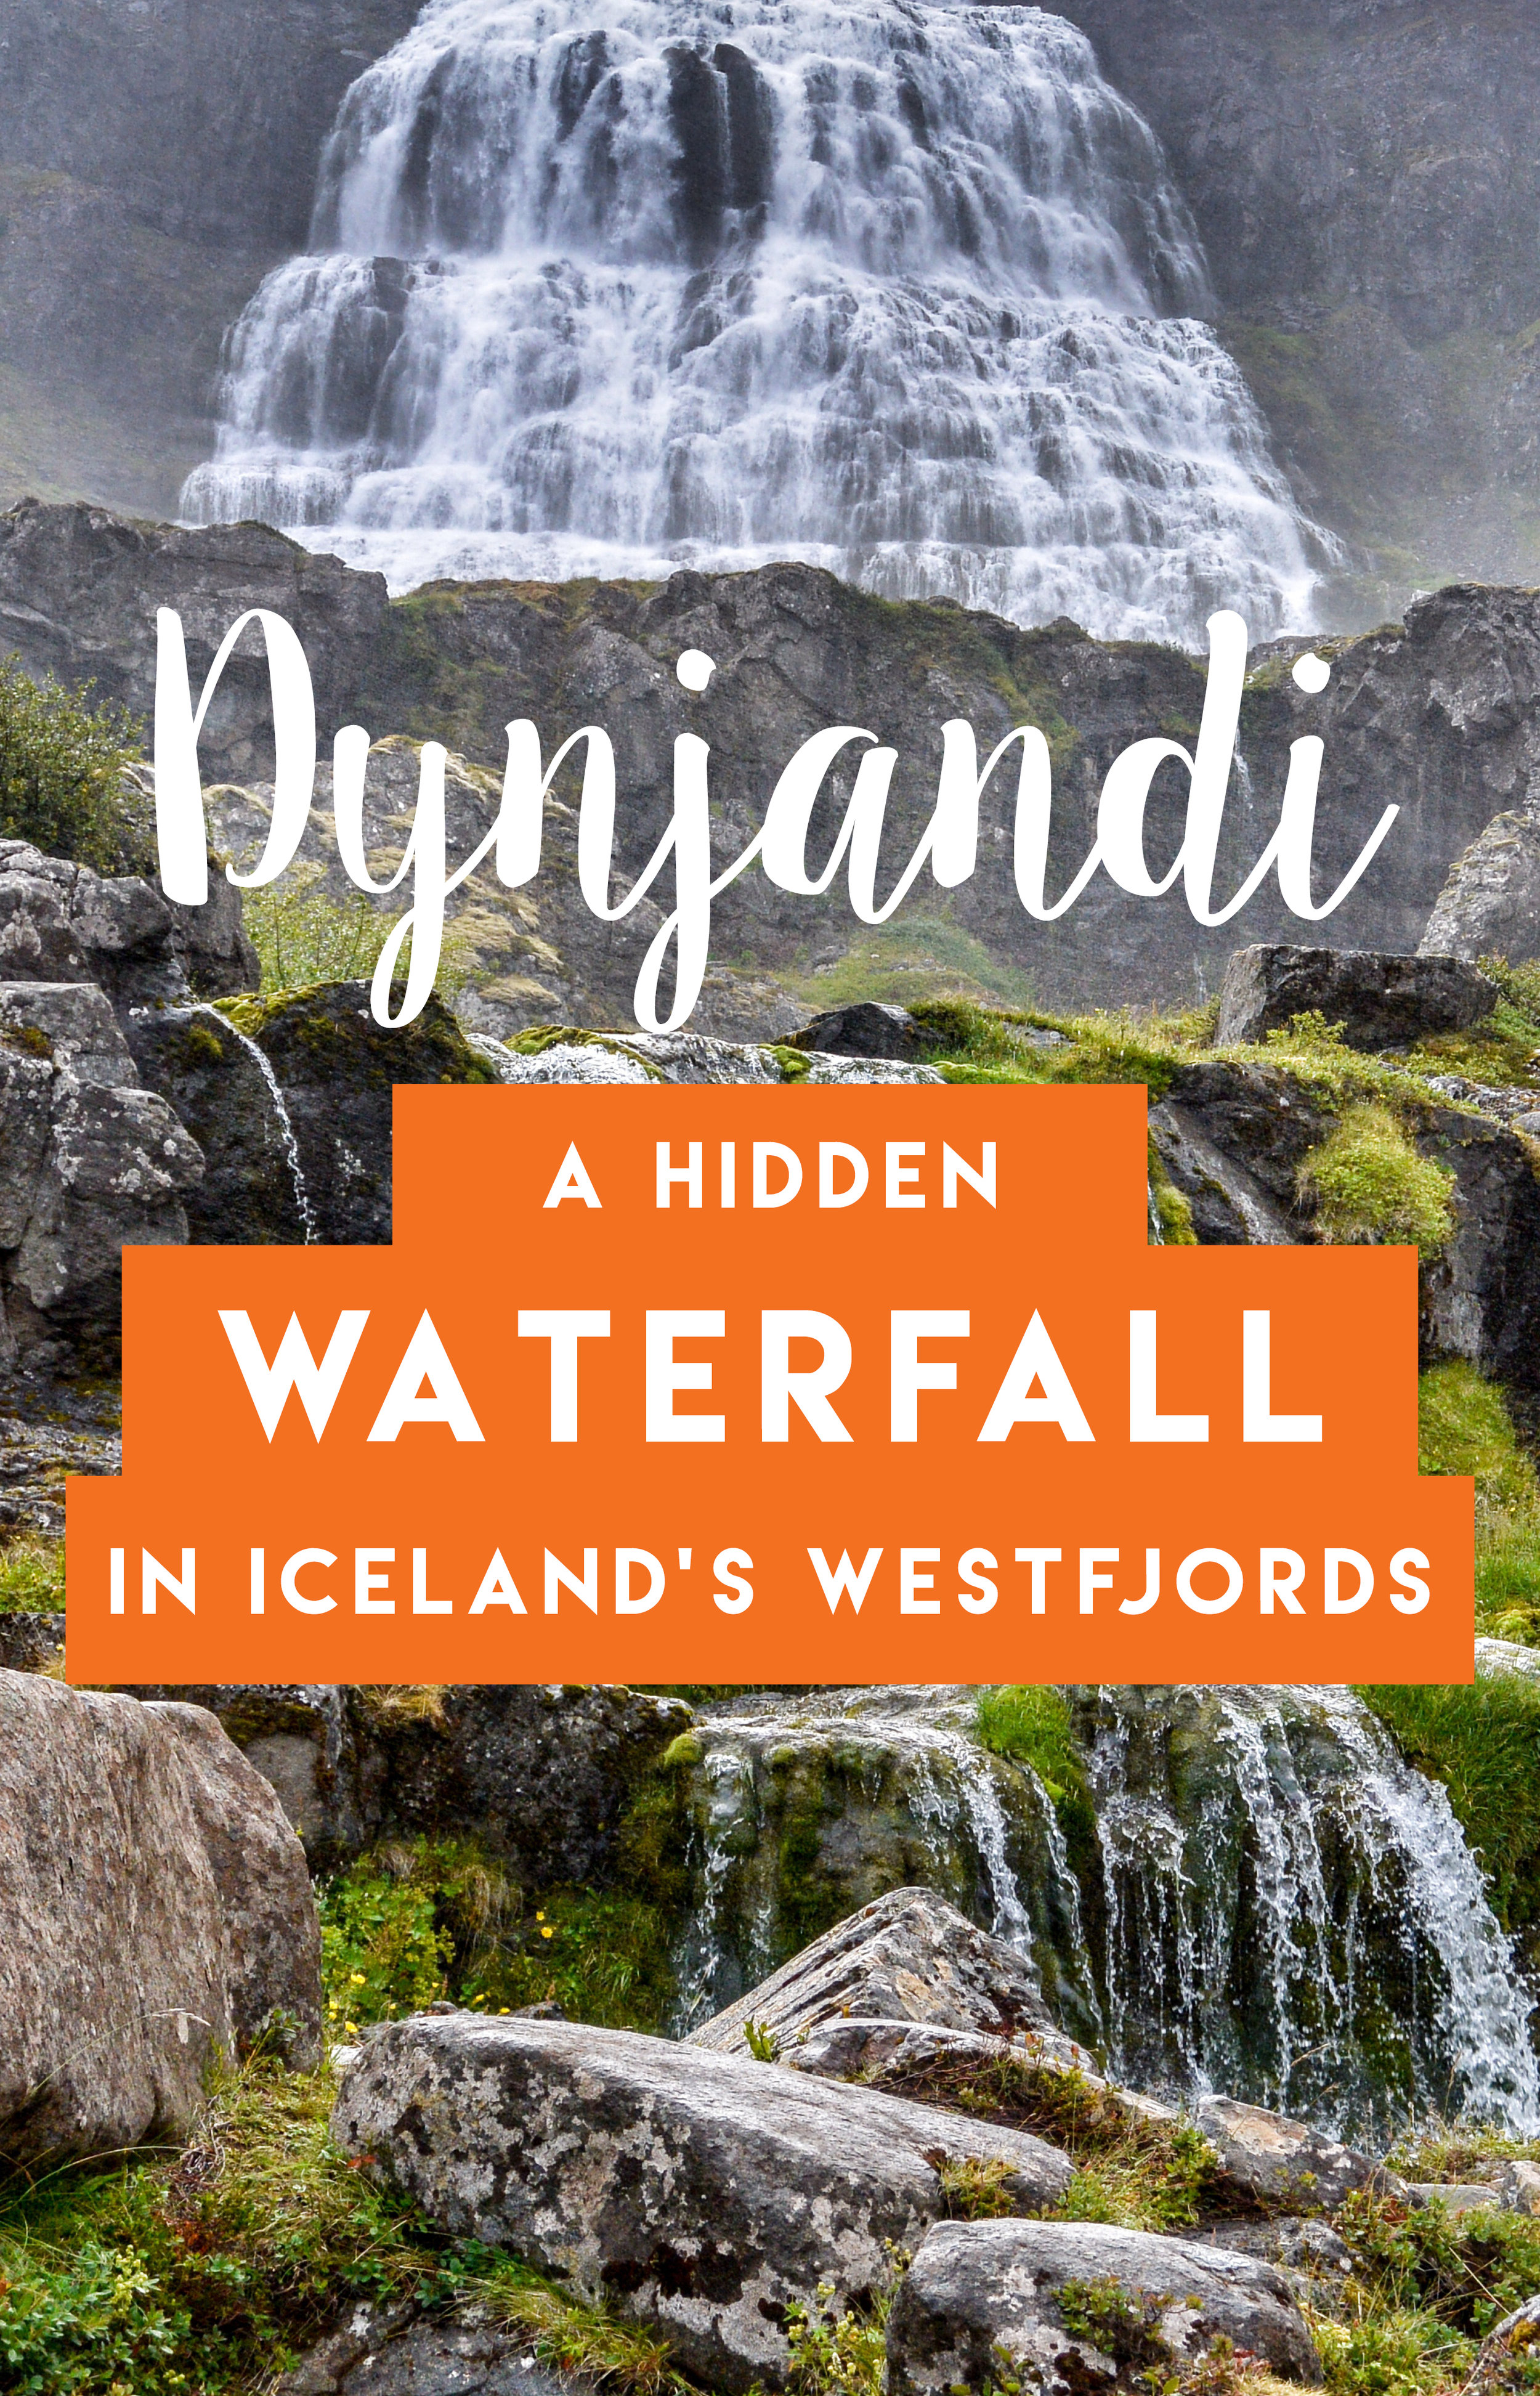 Discover one of the hidden gems of waterfalls: the breathtaking Dynjandi located in Iceland's remote Westfjords.